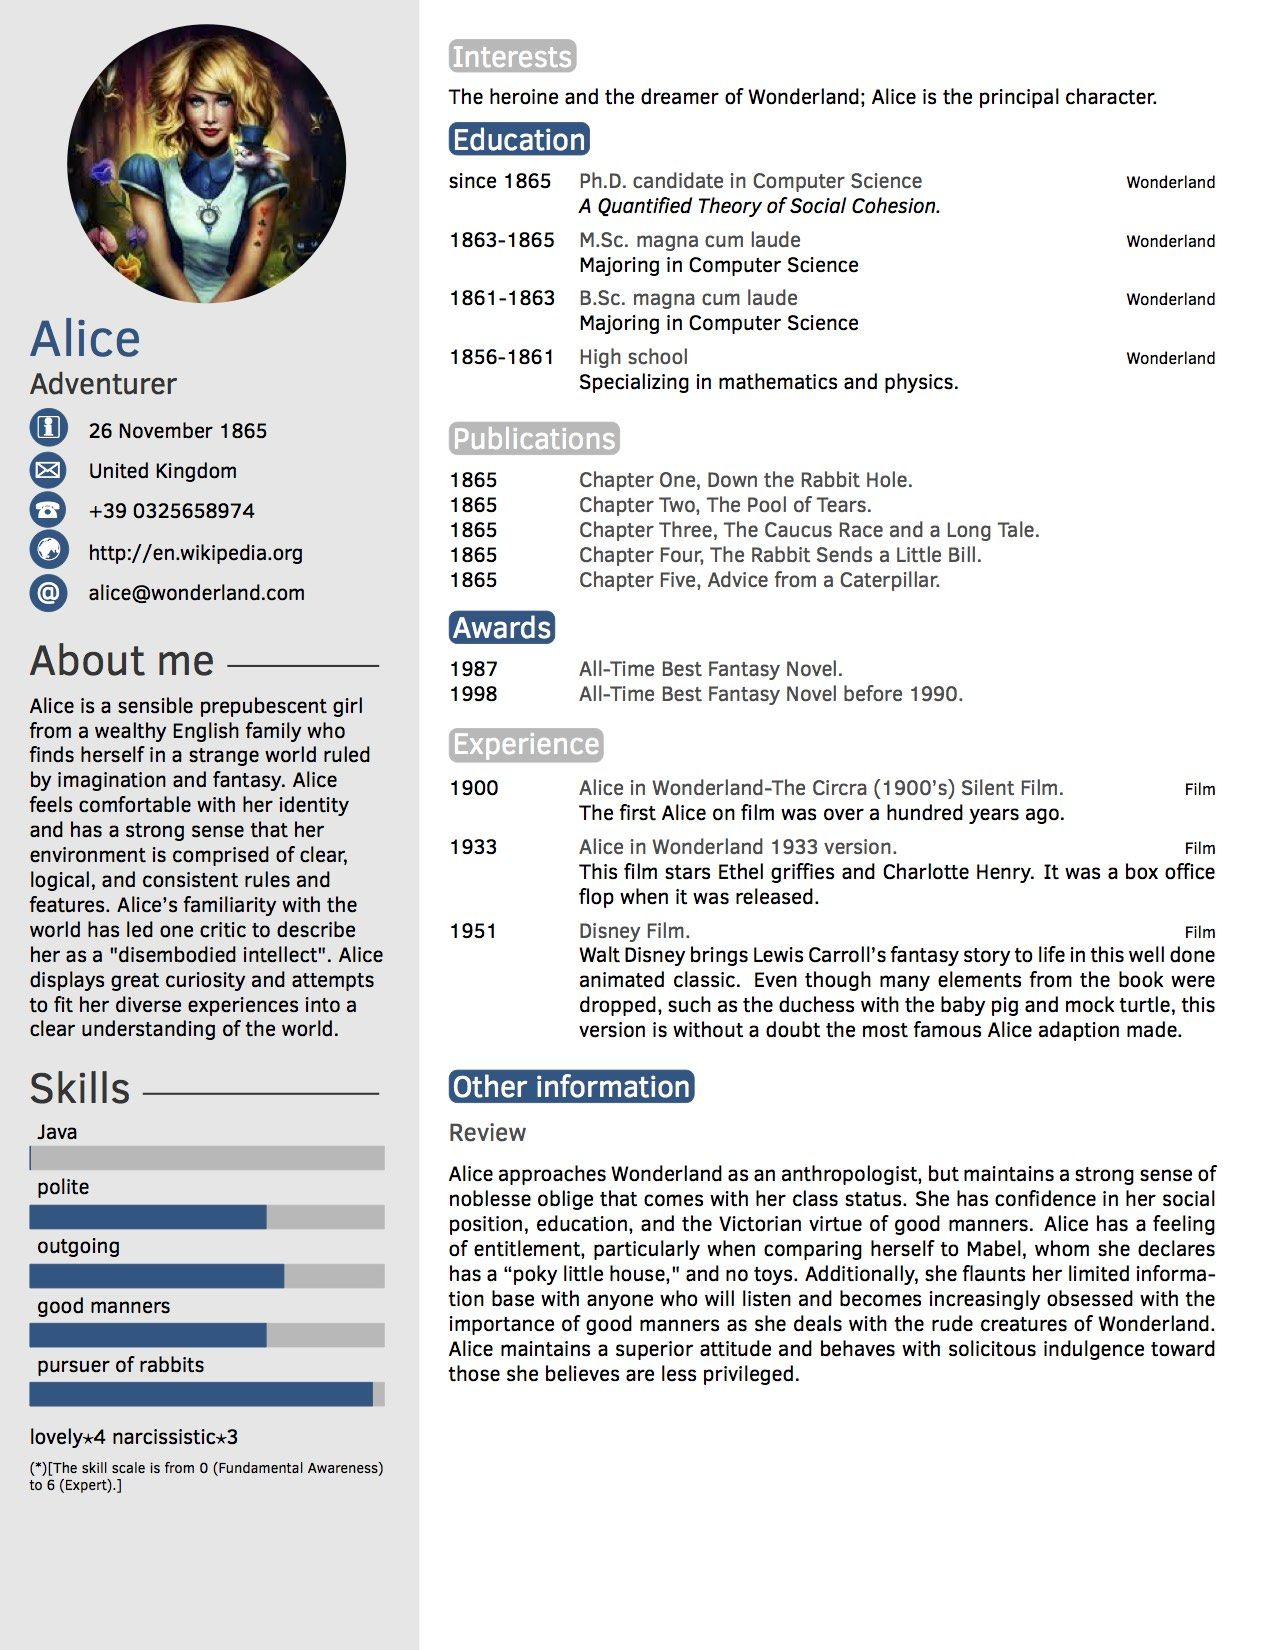 Resume Templates Latex Pinravignesh On Template  Pinterest  Resume Cv And Template